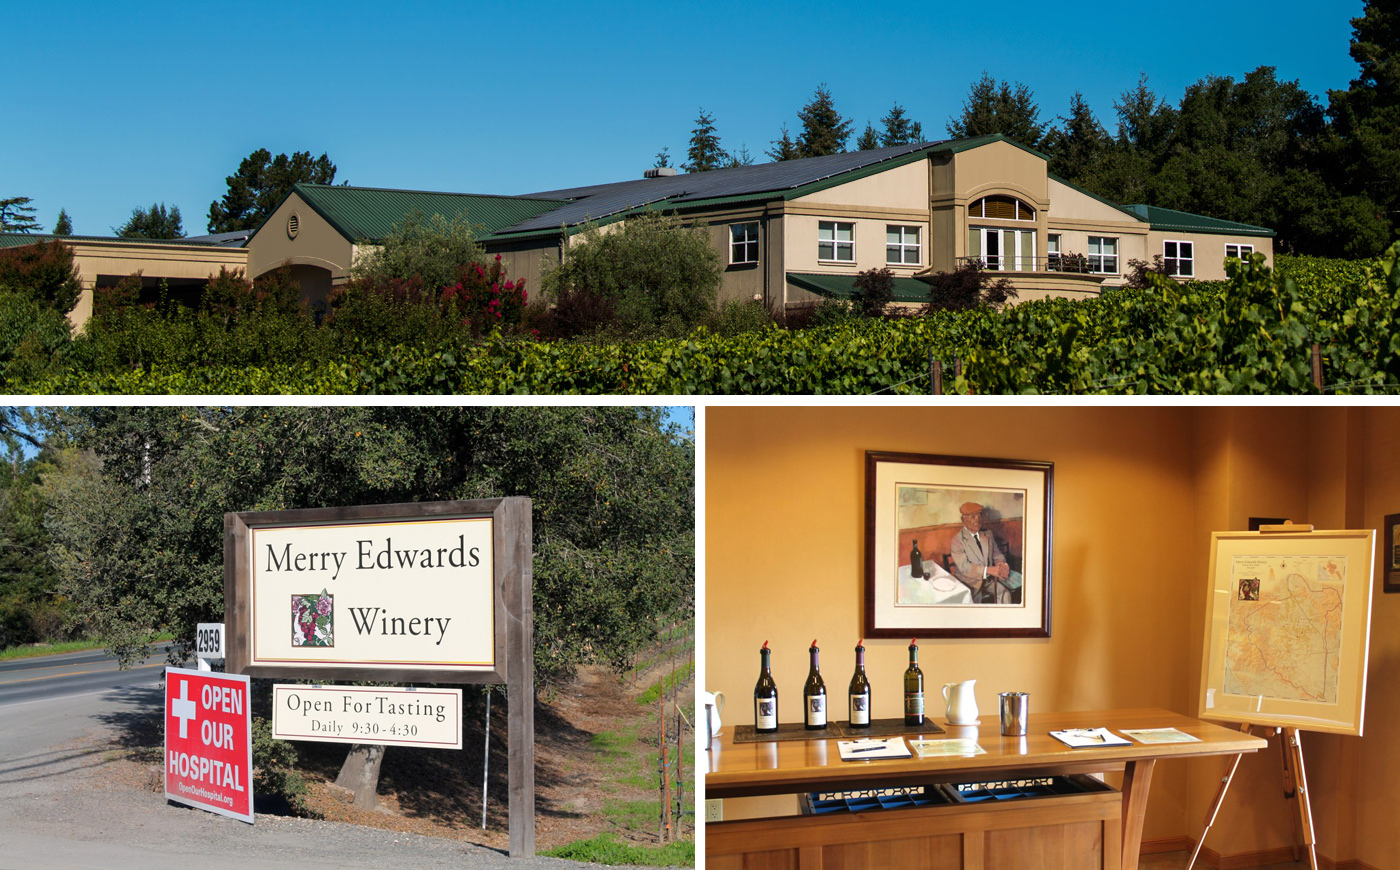 Merry Edwards Winery , Merry Edwards Winery Entrance , Merry Edwards Winery Tasting Room